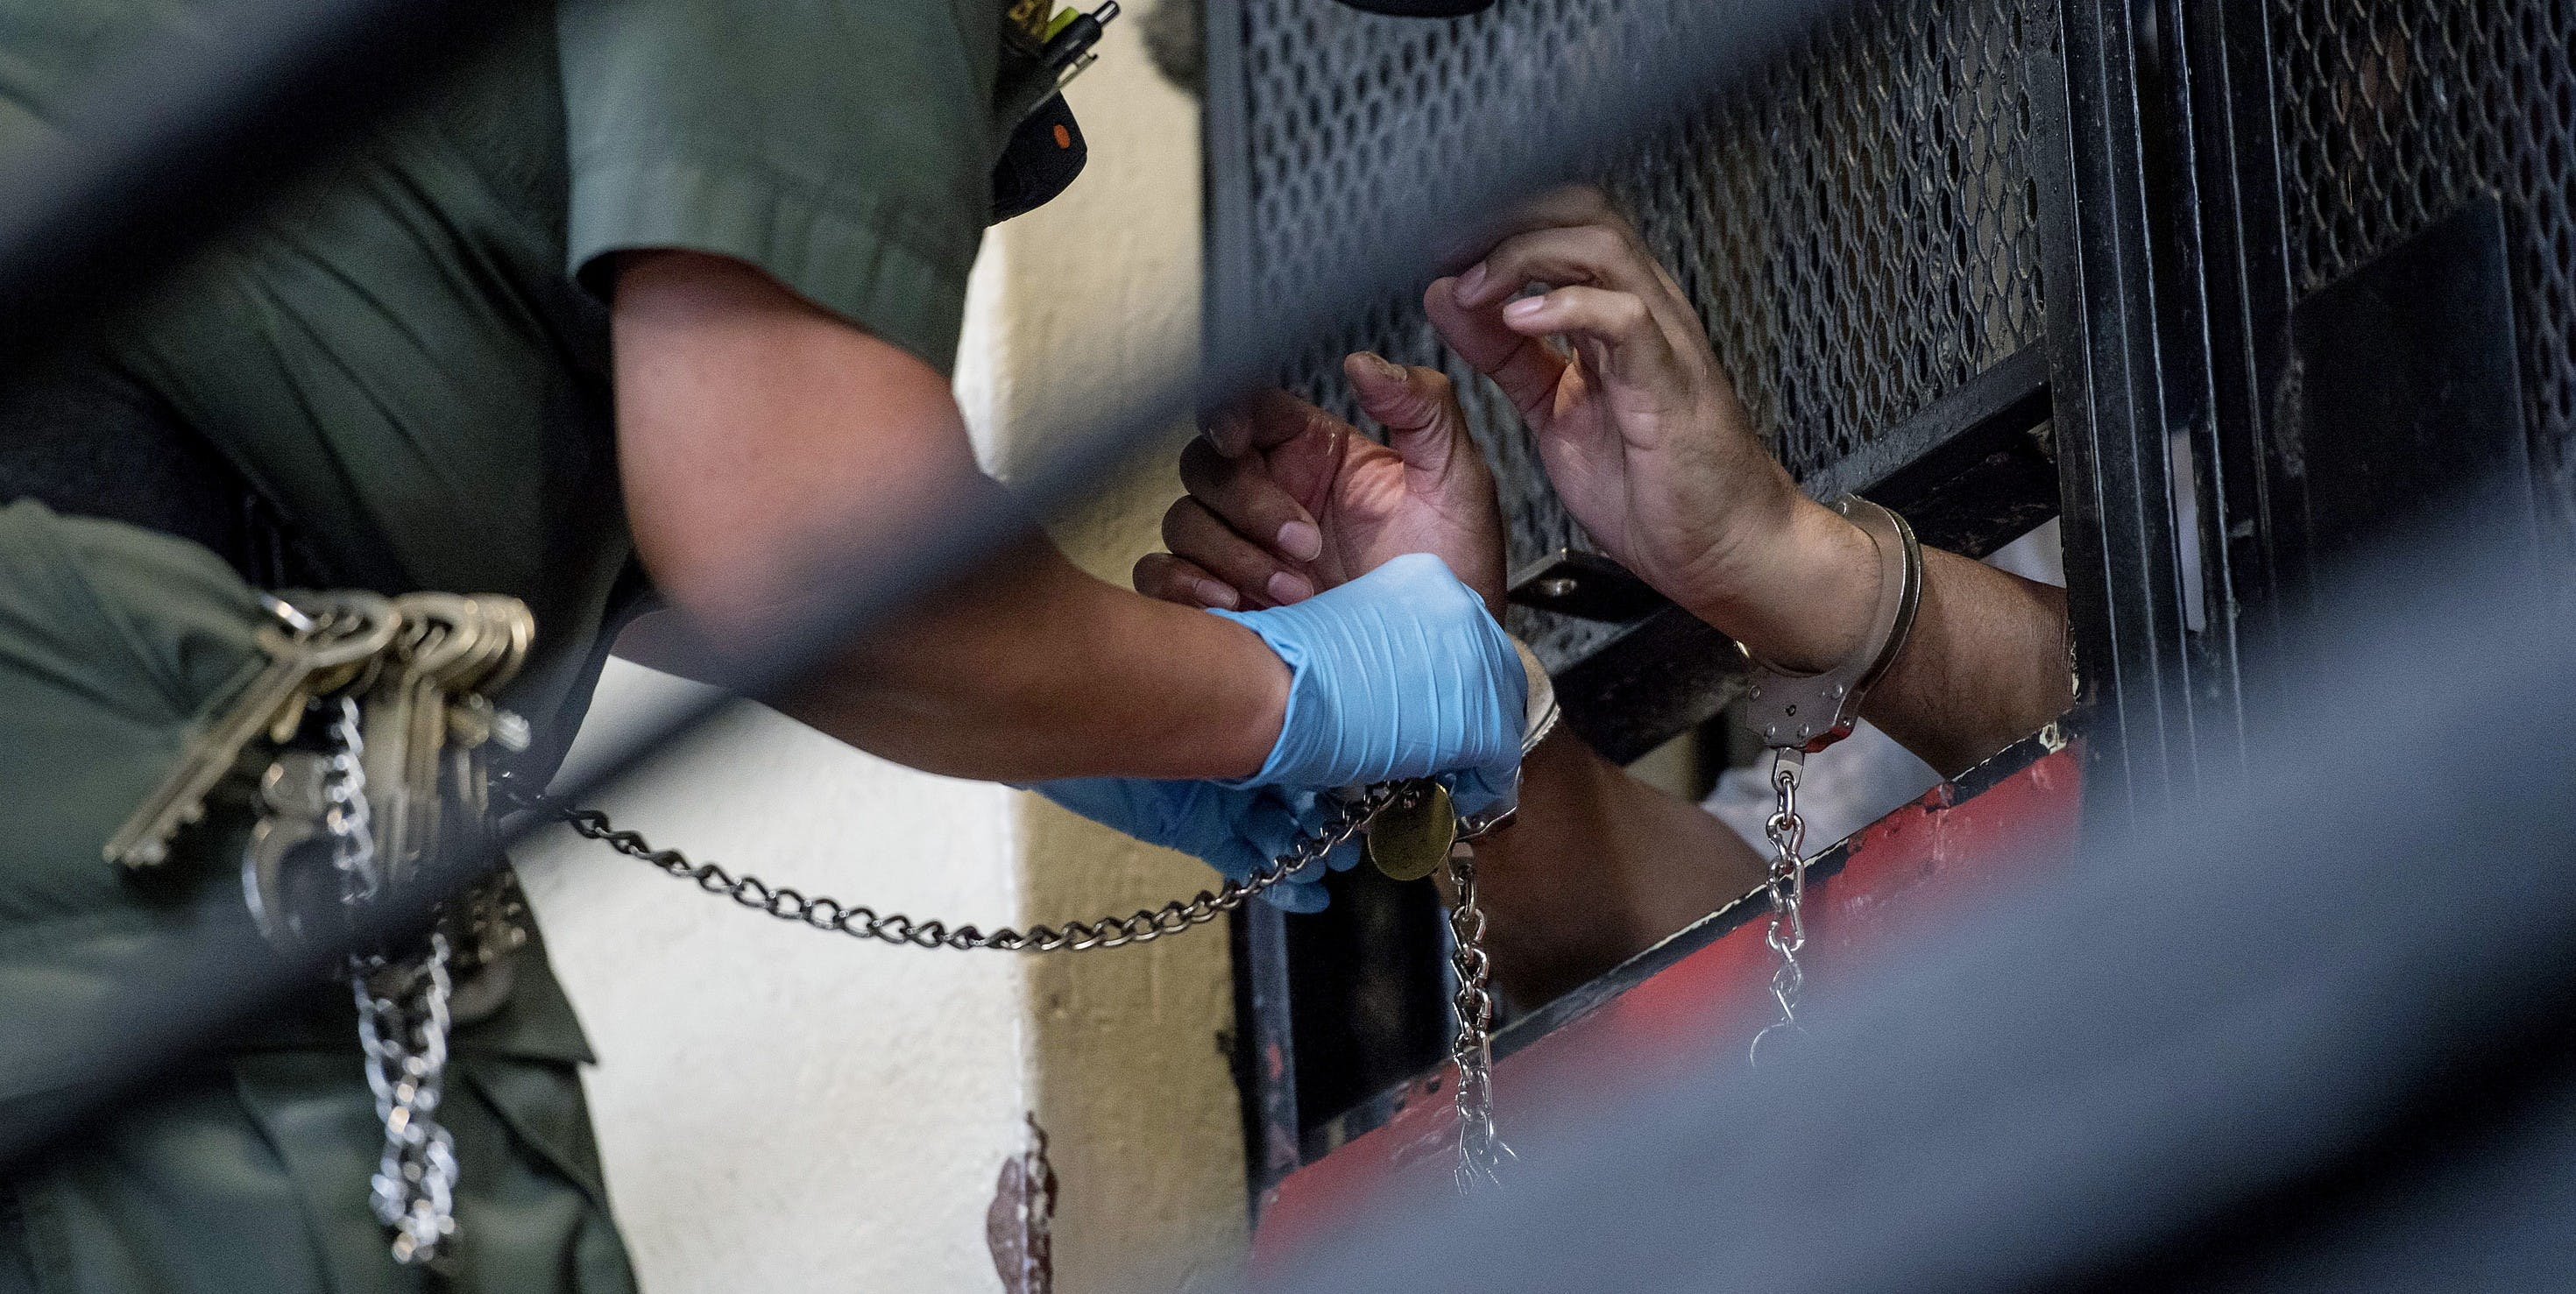 A corrections officer removes handcuff from an inmate in his cell at San Quentin State Prison in San Quentin, California, U.S., on Tuesday, Aug. 16, 2016. San Quentin, home to the state's only death row, houses 725 condemned inmates. On the November 8th California ballot voters have the chance to abolish the death penalty or speed up the process. Photographer: David Paul Morris/Bloomberg via Getty Images